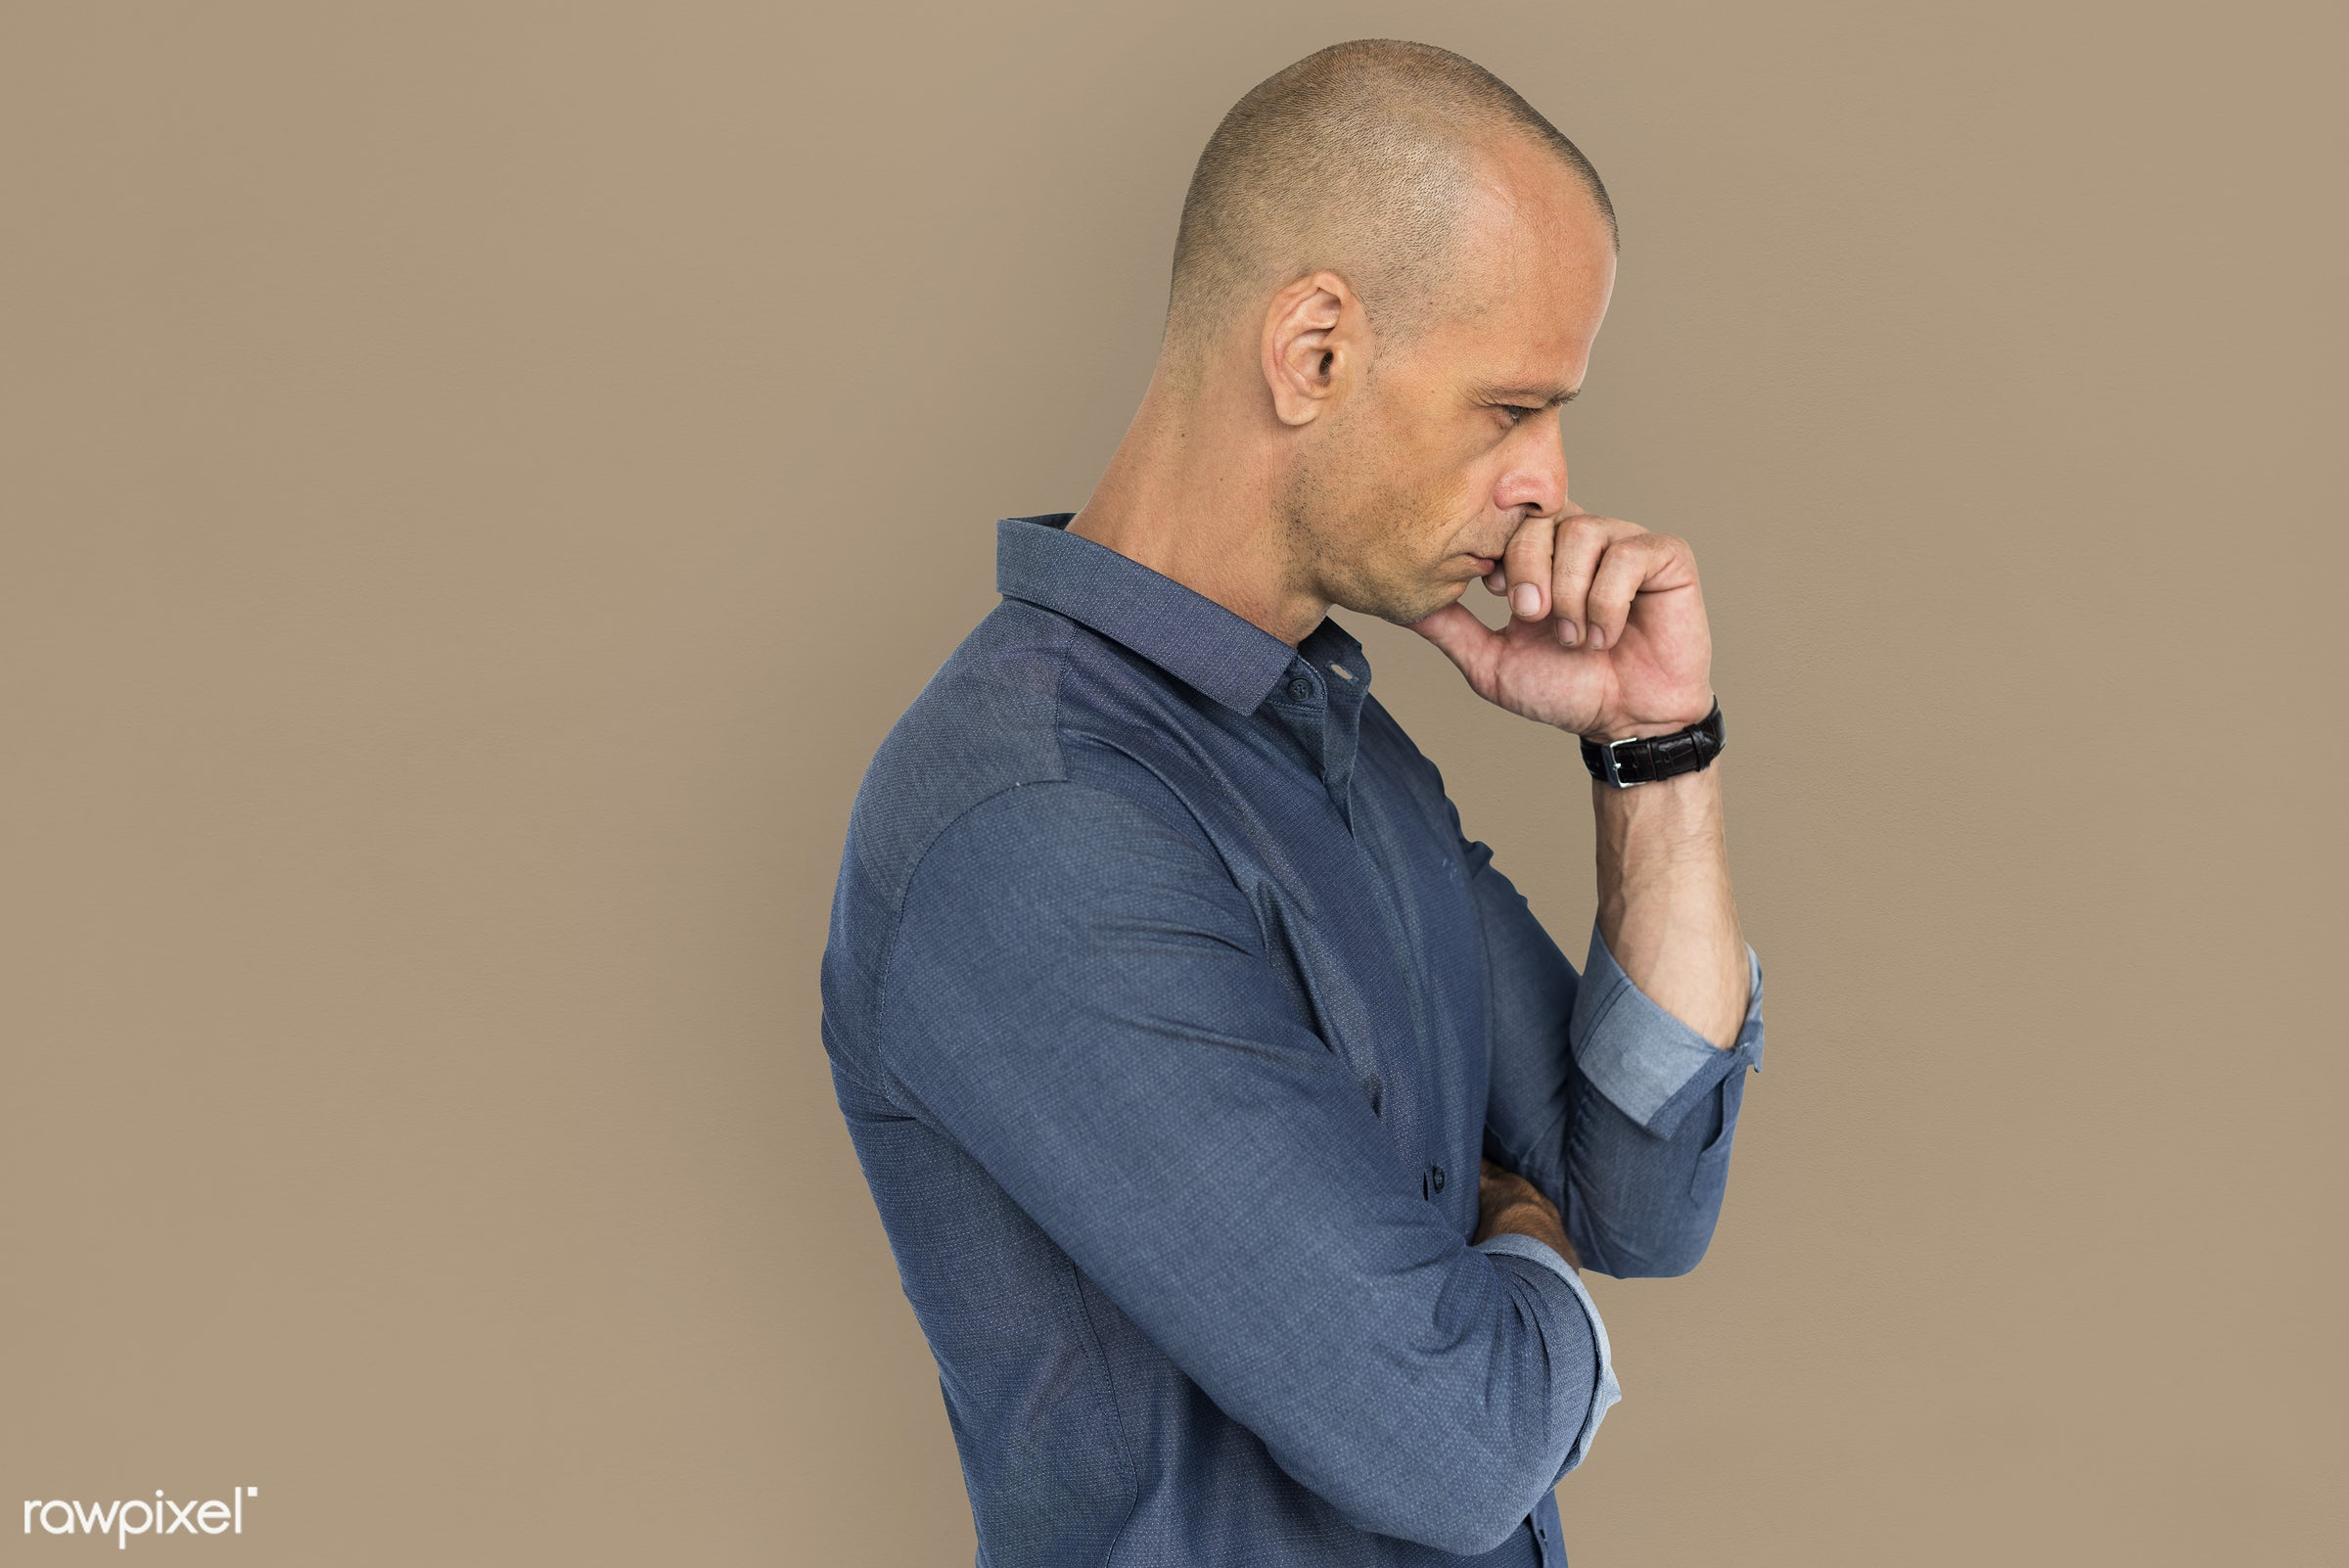 studio, expression, depress, face, person, bored, boredom, people, curious, casual, serious, lonely, alone, man, male, bald...